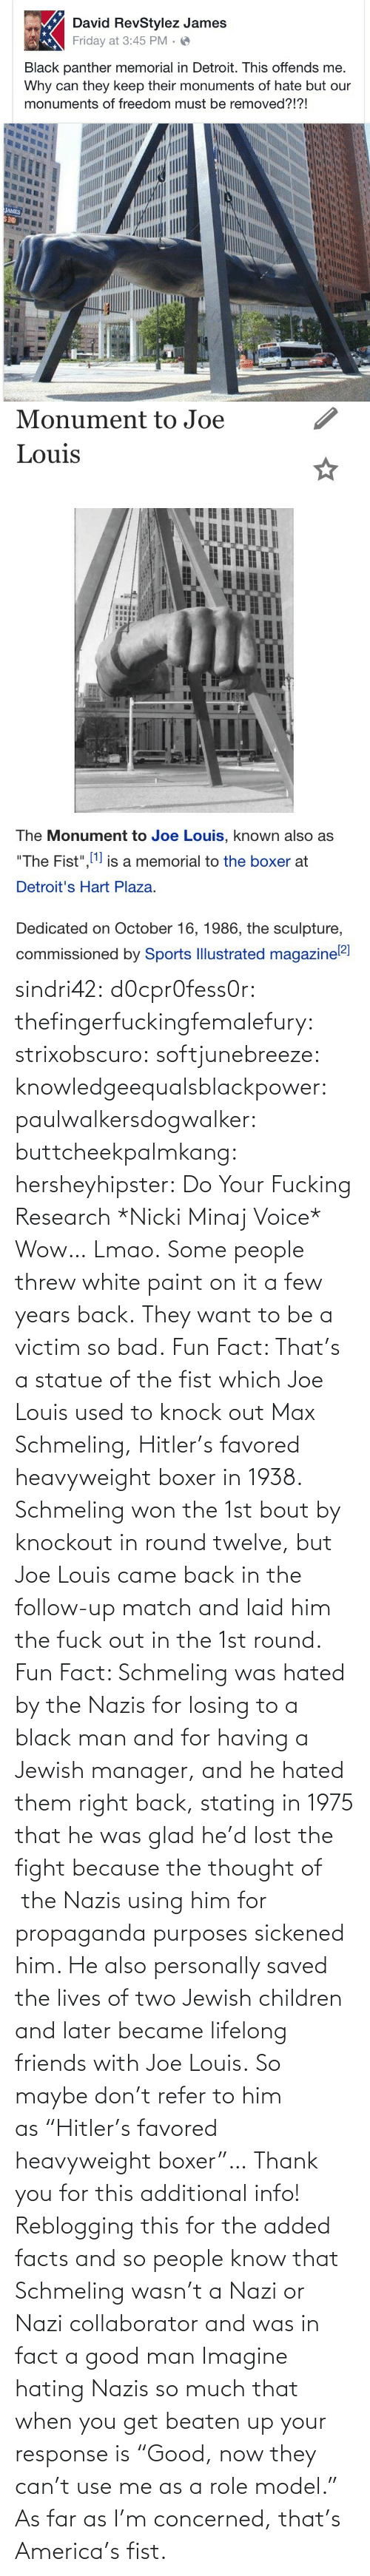 "LMAO: sindri42:  d0cpr0fess0r:  thefingerfuckingfemalefury:  strixobscuro:  softjunebreeze:  knowledgeequalsblackpower:  paulwalkersdogwalker:   buttcheekpalmkang:   hersheyhipster:  Do Your Fucking Research *Nicki Minaj Voice*    Wow… Lmao.   Some people threw white paint on it a few years back.   They want to be a victim so bad.  Fun Fact: That's a statue of the fist which Joe Louis used to knock out Max Schmeling, Hitler's favored heavyweight boxer in 1938. Schmeling won the 1st bout by knockout in round twelve, but Joe Louis came back in the follow-up match and laid him the fuck out in the 1st round.  Fun Fact: Schmeling was hated by the Nazis for losing to a black man and for having a Jewish manager, and he hated them right back, stating in 1975 that he was glad he'd lost the fight because the thought of  the Nazis using him for propaganda purposes sickened him. He also personally saved the lives of two Jewish children and later became lifelong friends with Joe Louis. So maybe don't refer to him as ""Hitler's favored heavyweight boxer""…  Thank you for this additional info! Reblogging this for the added facts and so people know that Schmeling wasn't a Nazi or Nazi collaborator and was in fact a good man   Imagine hating Nazis so much that when you get beaten up your response is ""Good, now they can't use me as a role model.""  As far as I'm concerned, that's America's fist."